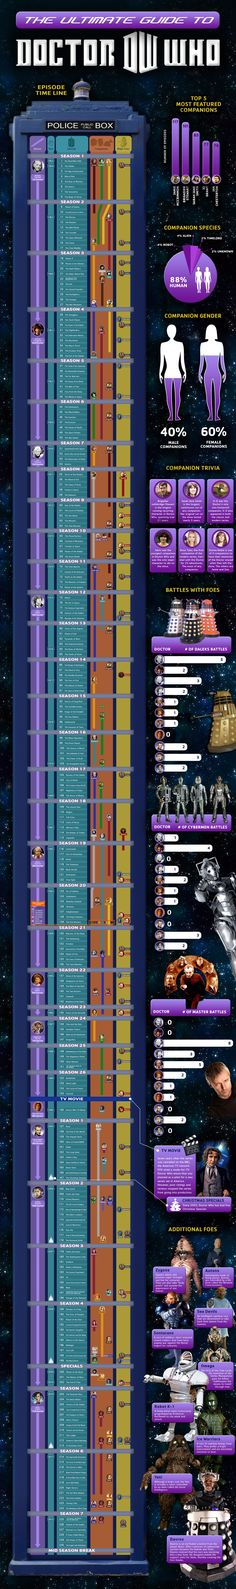 Ultimate Guide to Doctor Who. Love this!! <3